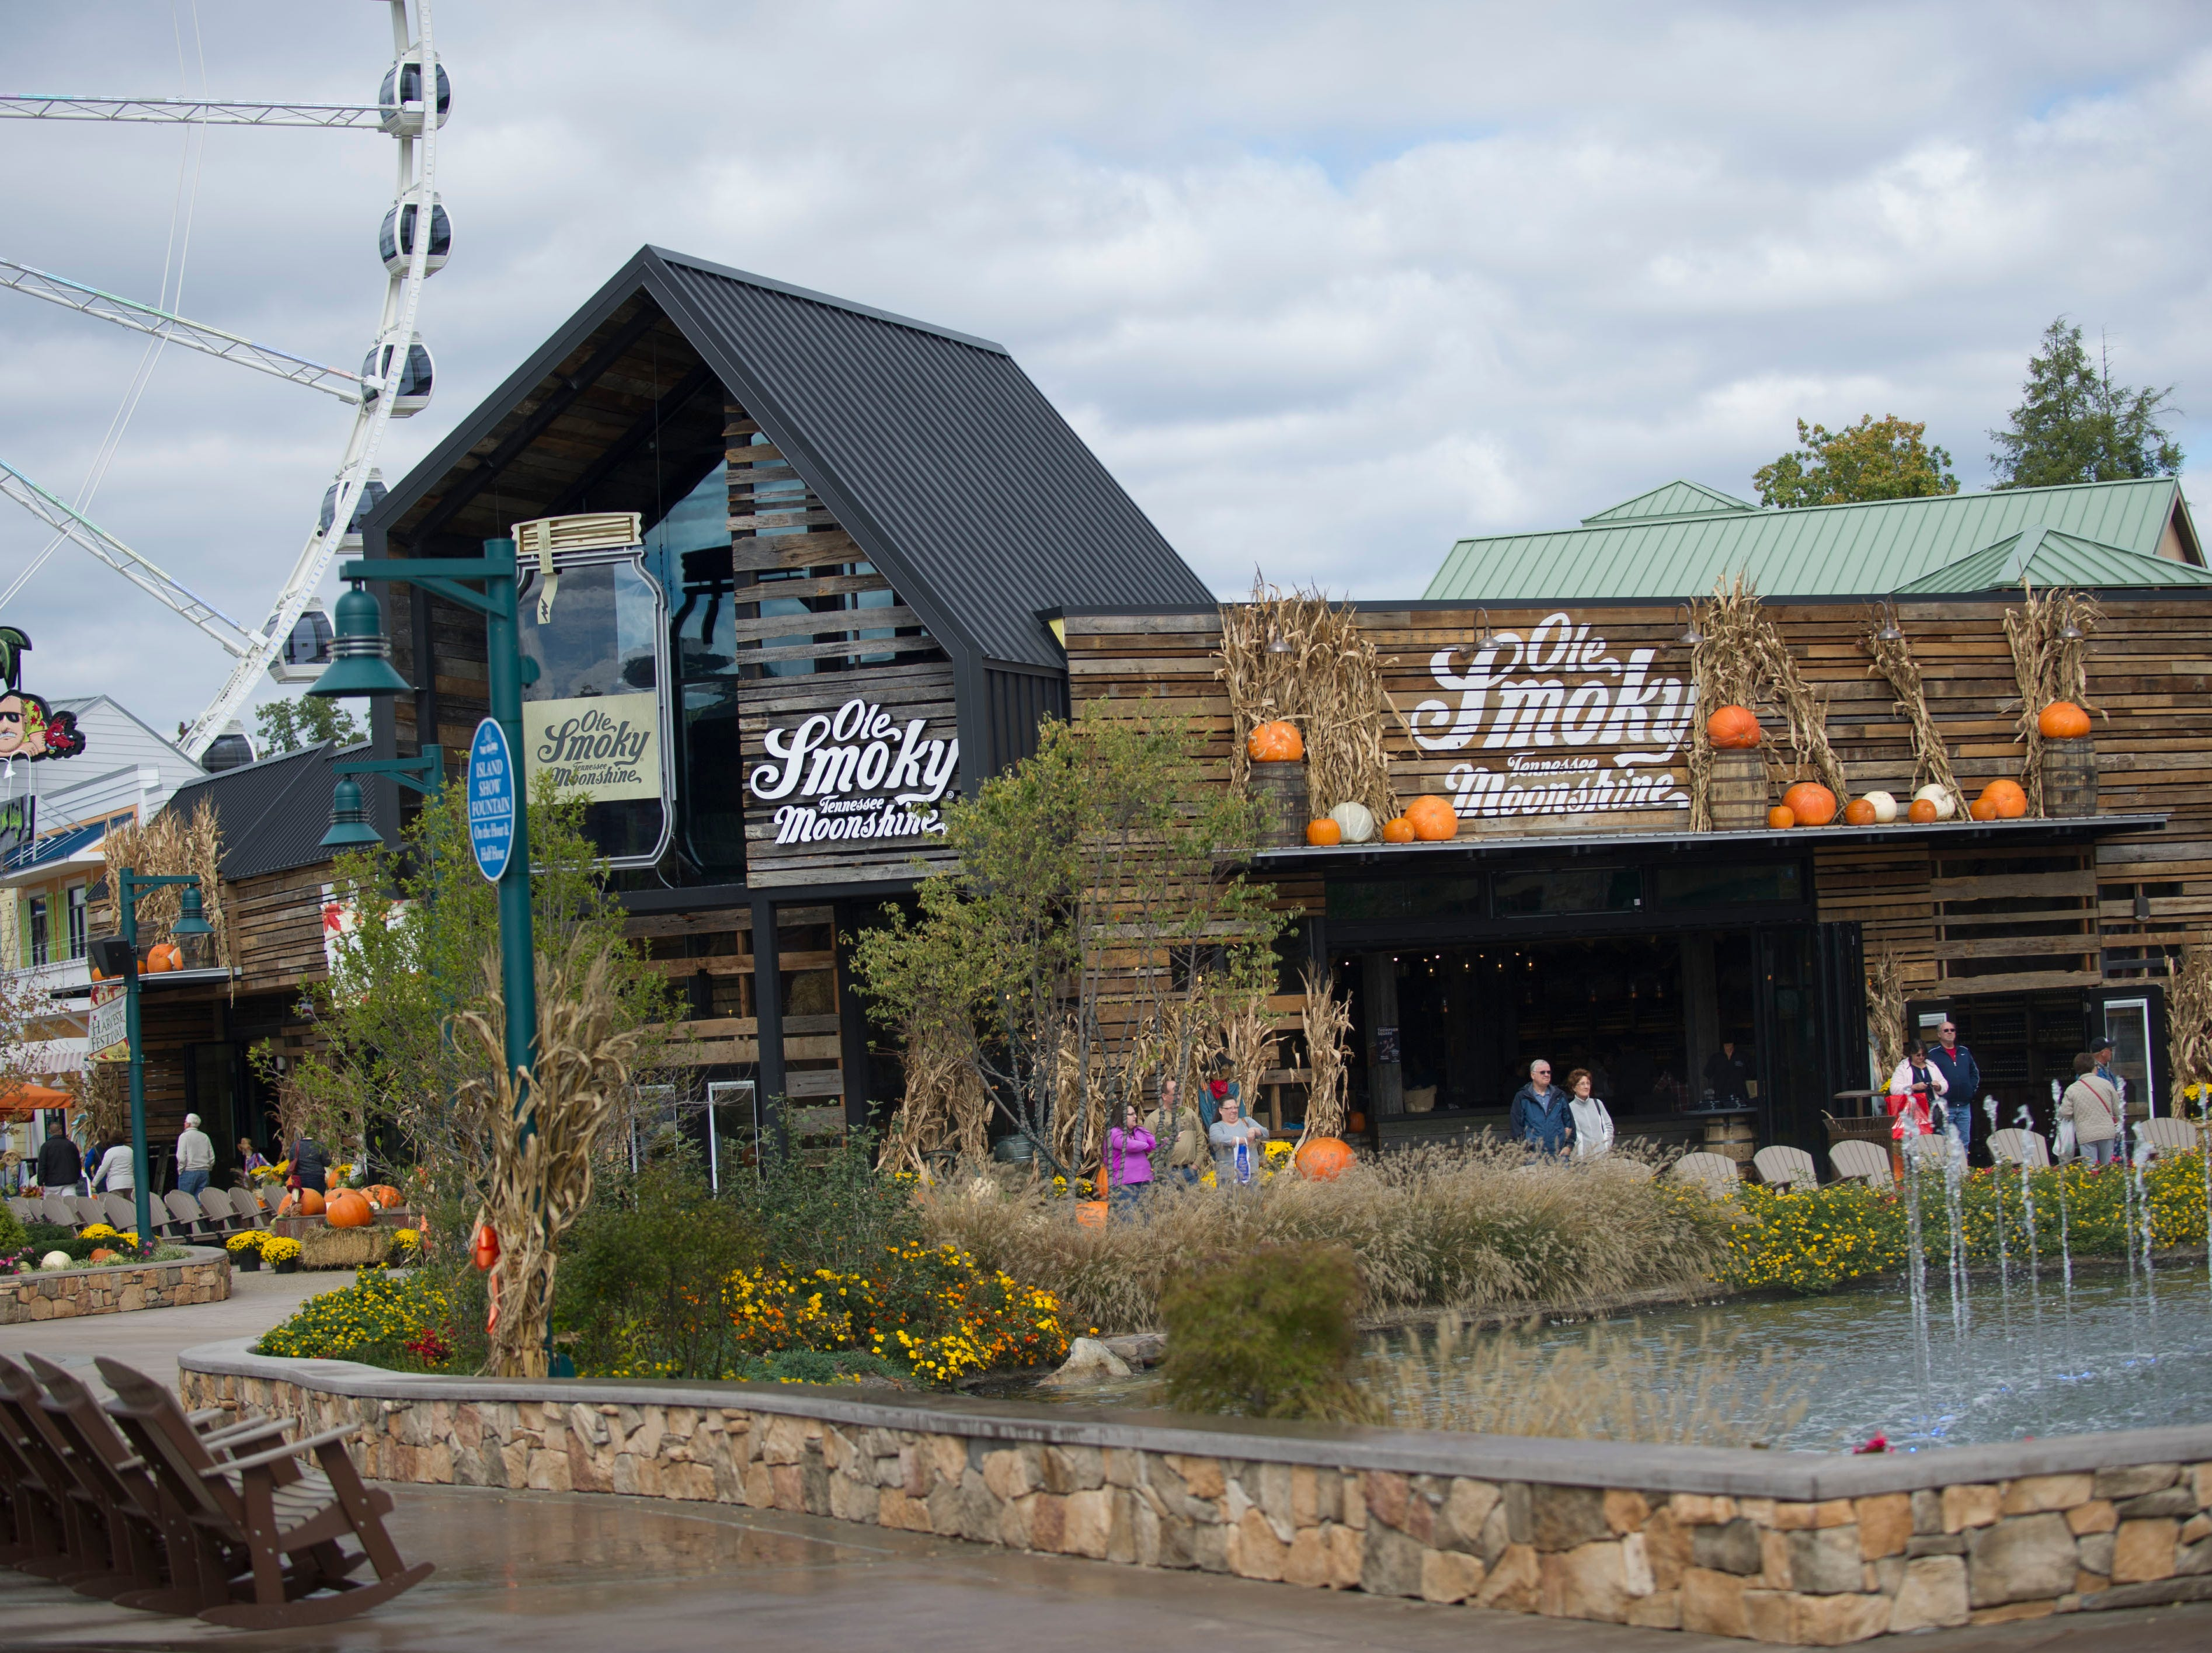 The Ole Smoky Tennessee Moonshine distillery and store is pictured Wednesday, Oct. 22, 2014, in Pigeon Forge. The non-aged whiskey maker just opened a new location at the Island in Pigeon Forge to complement its original distillery in Gatlinburg.